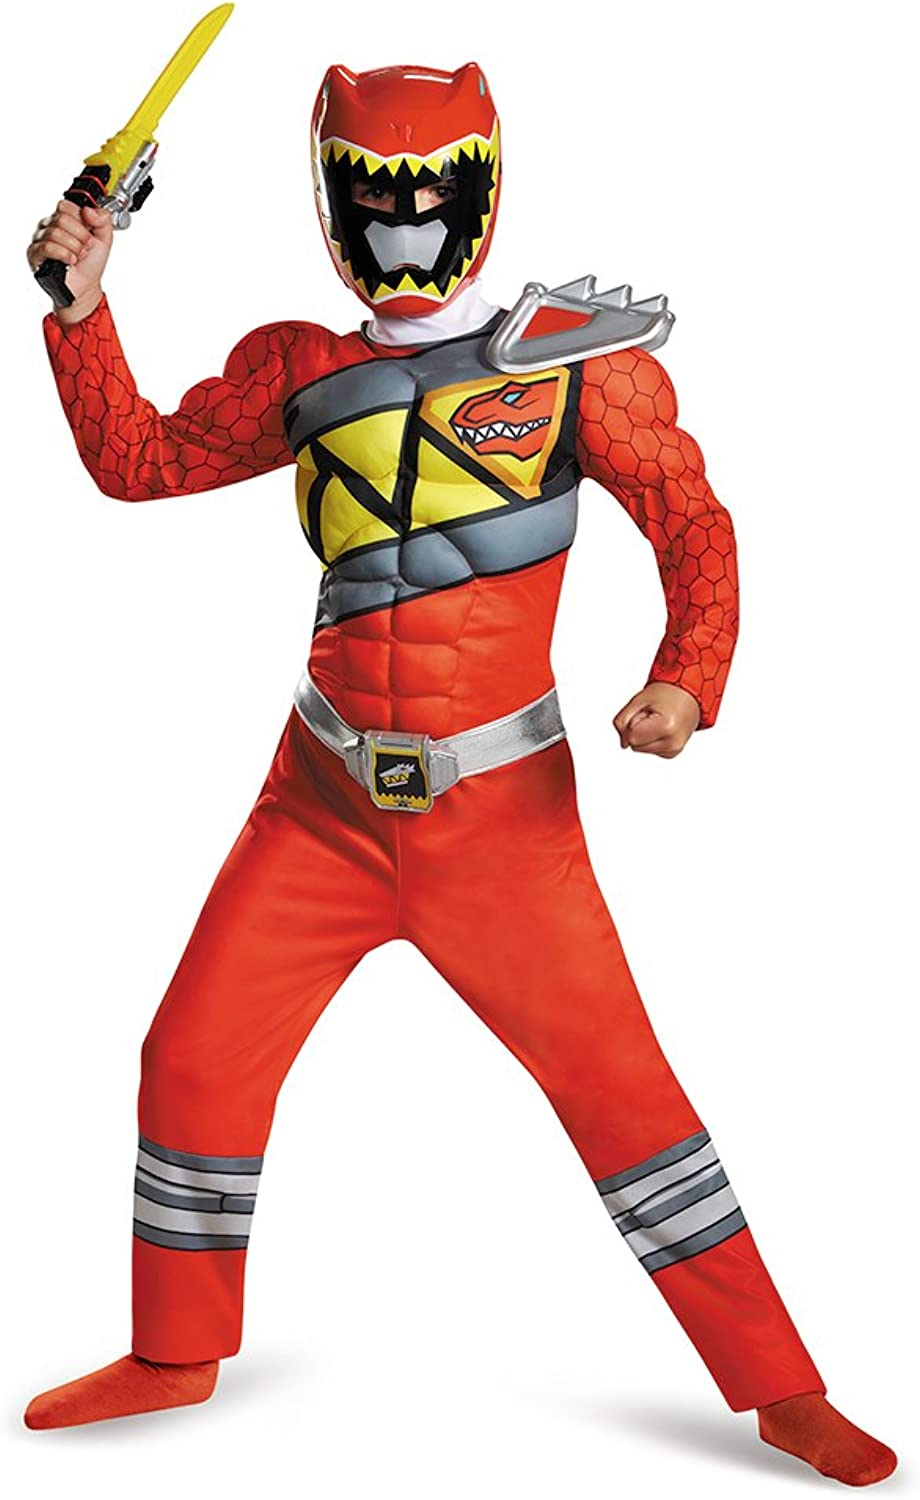 compras online de deportes Disguise rojo Ranger Dino Charge Classic Muscle Muscle Muscle Costume, Large (10-12) by Disguise  venta al por mayor barato